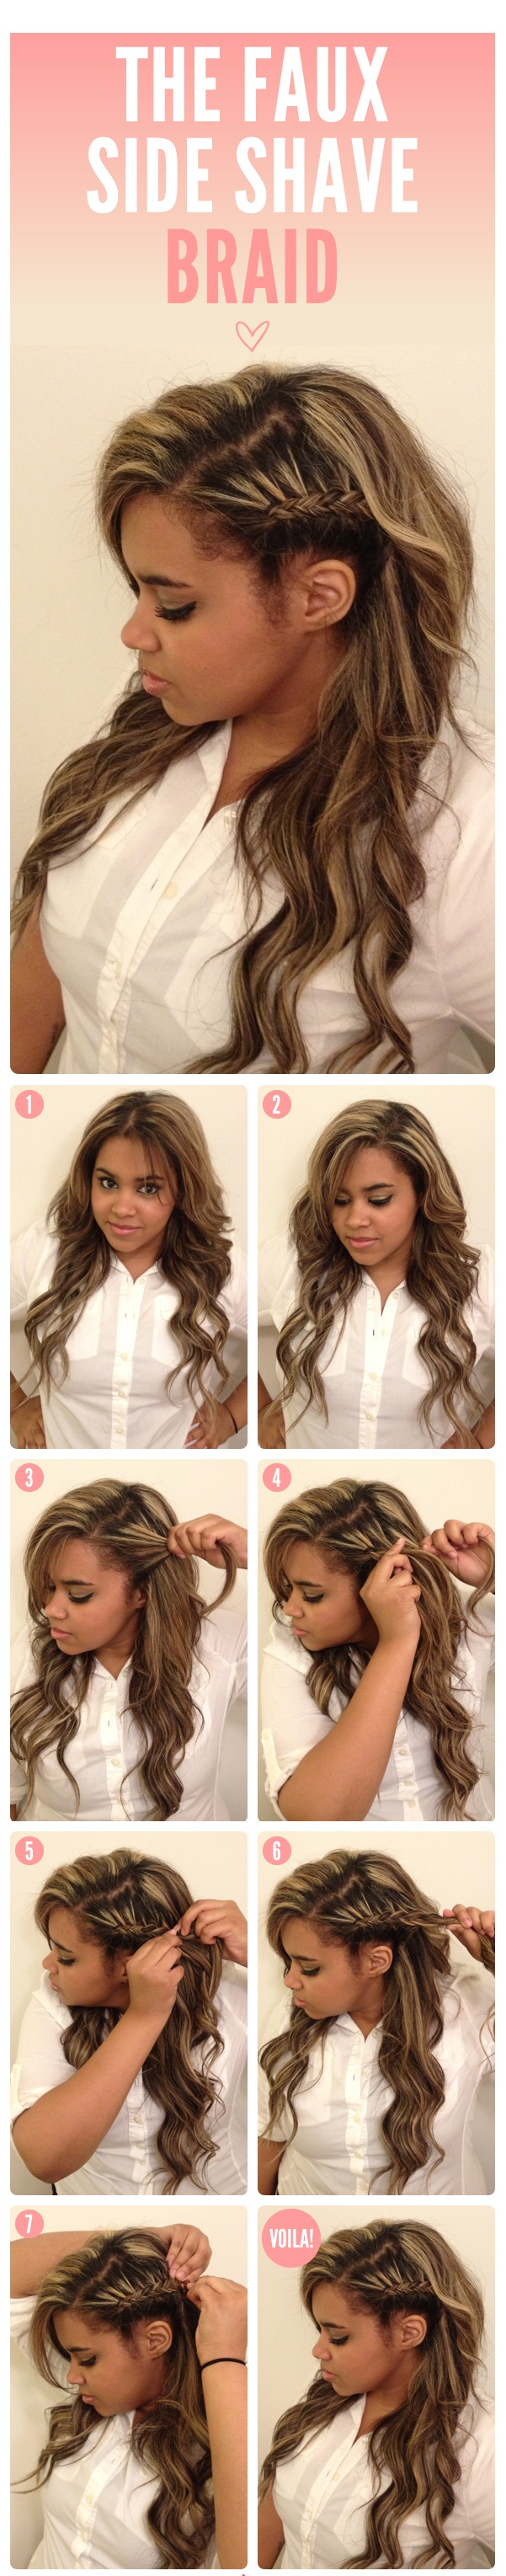 Wondrous 25 Diy Braided Hairstyles You Really Have To Pin Hairstyles For Women Draintrainus